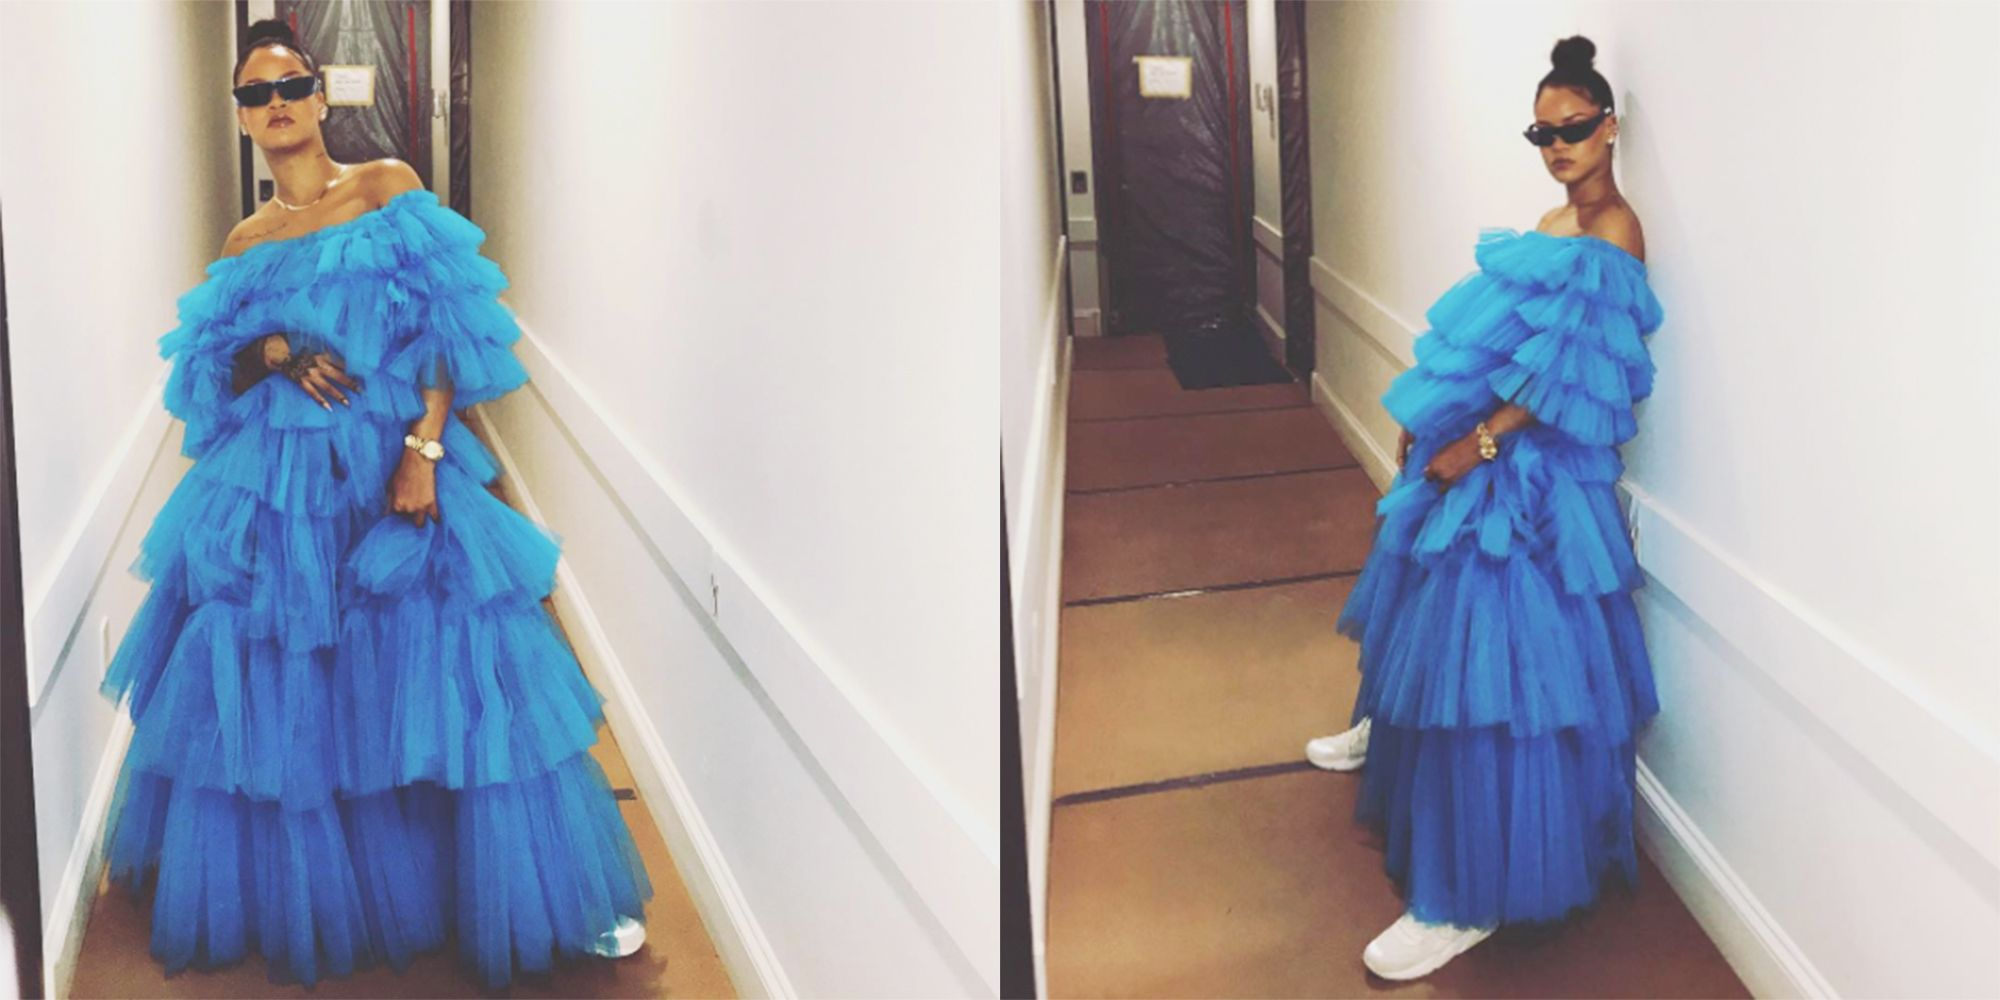 Rihanna Wears a Ball Gown with Sneakers - Rihanna Blue Molly Goddard ...